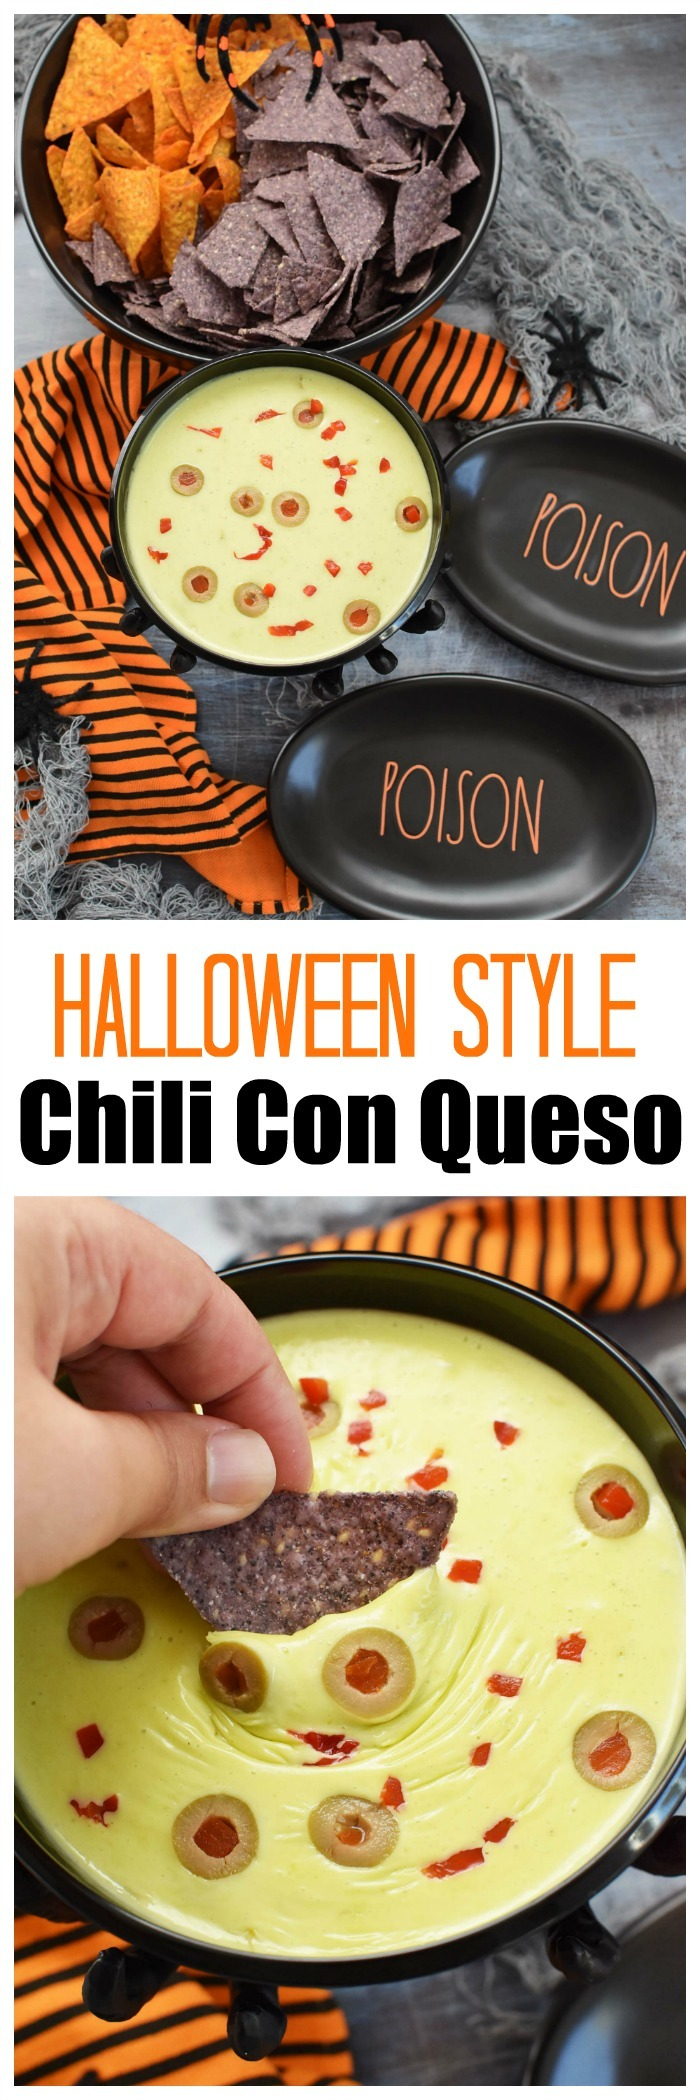 Halloween Chili Con Queso Dip